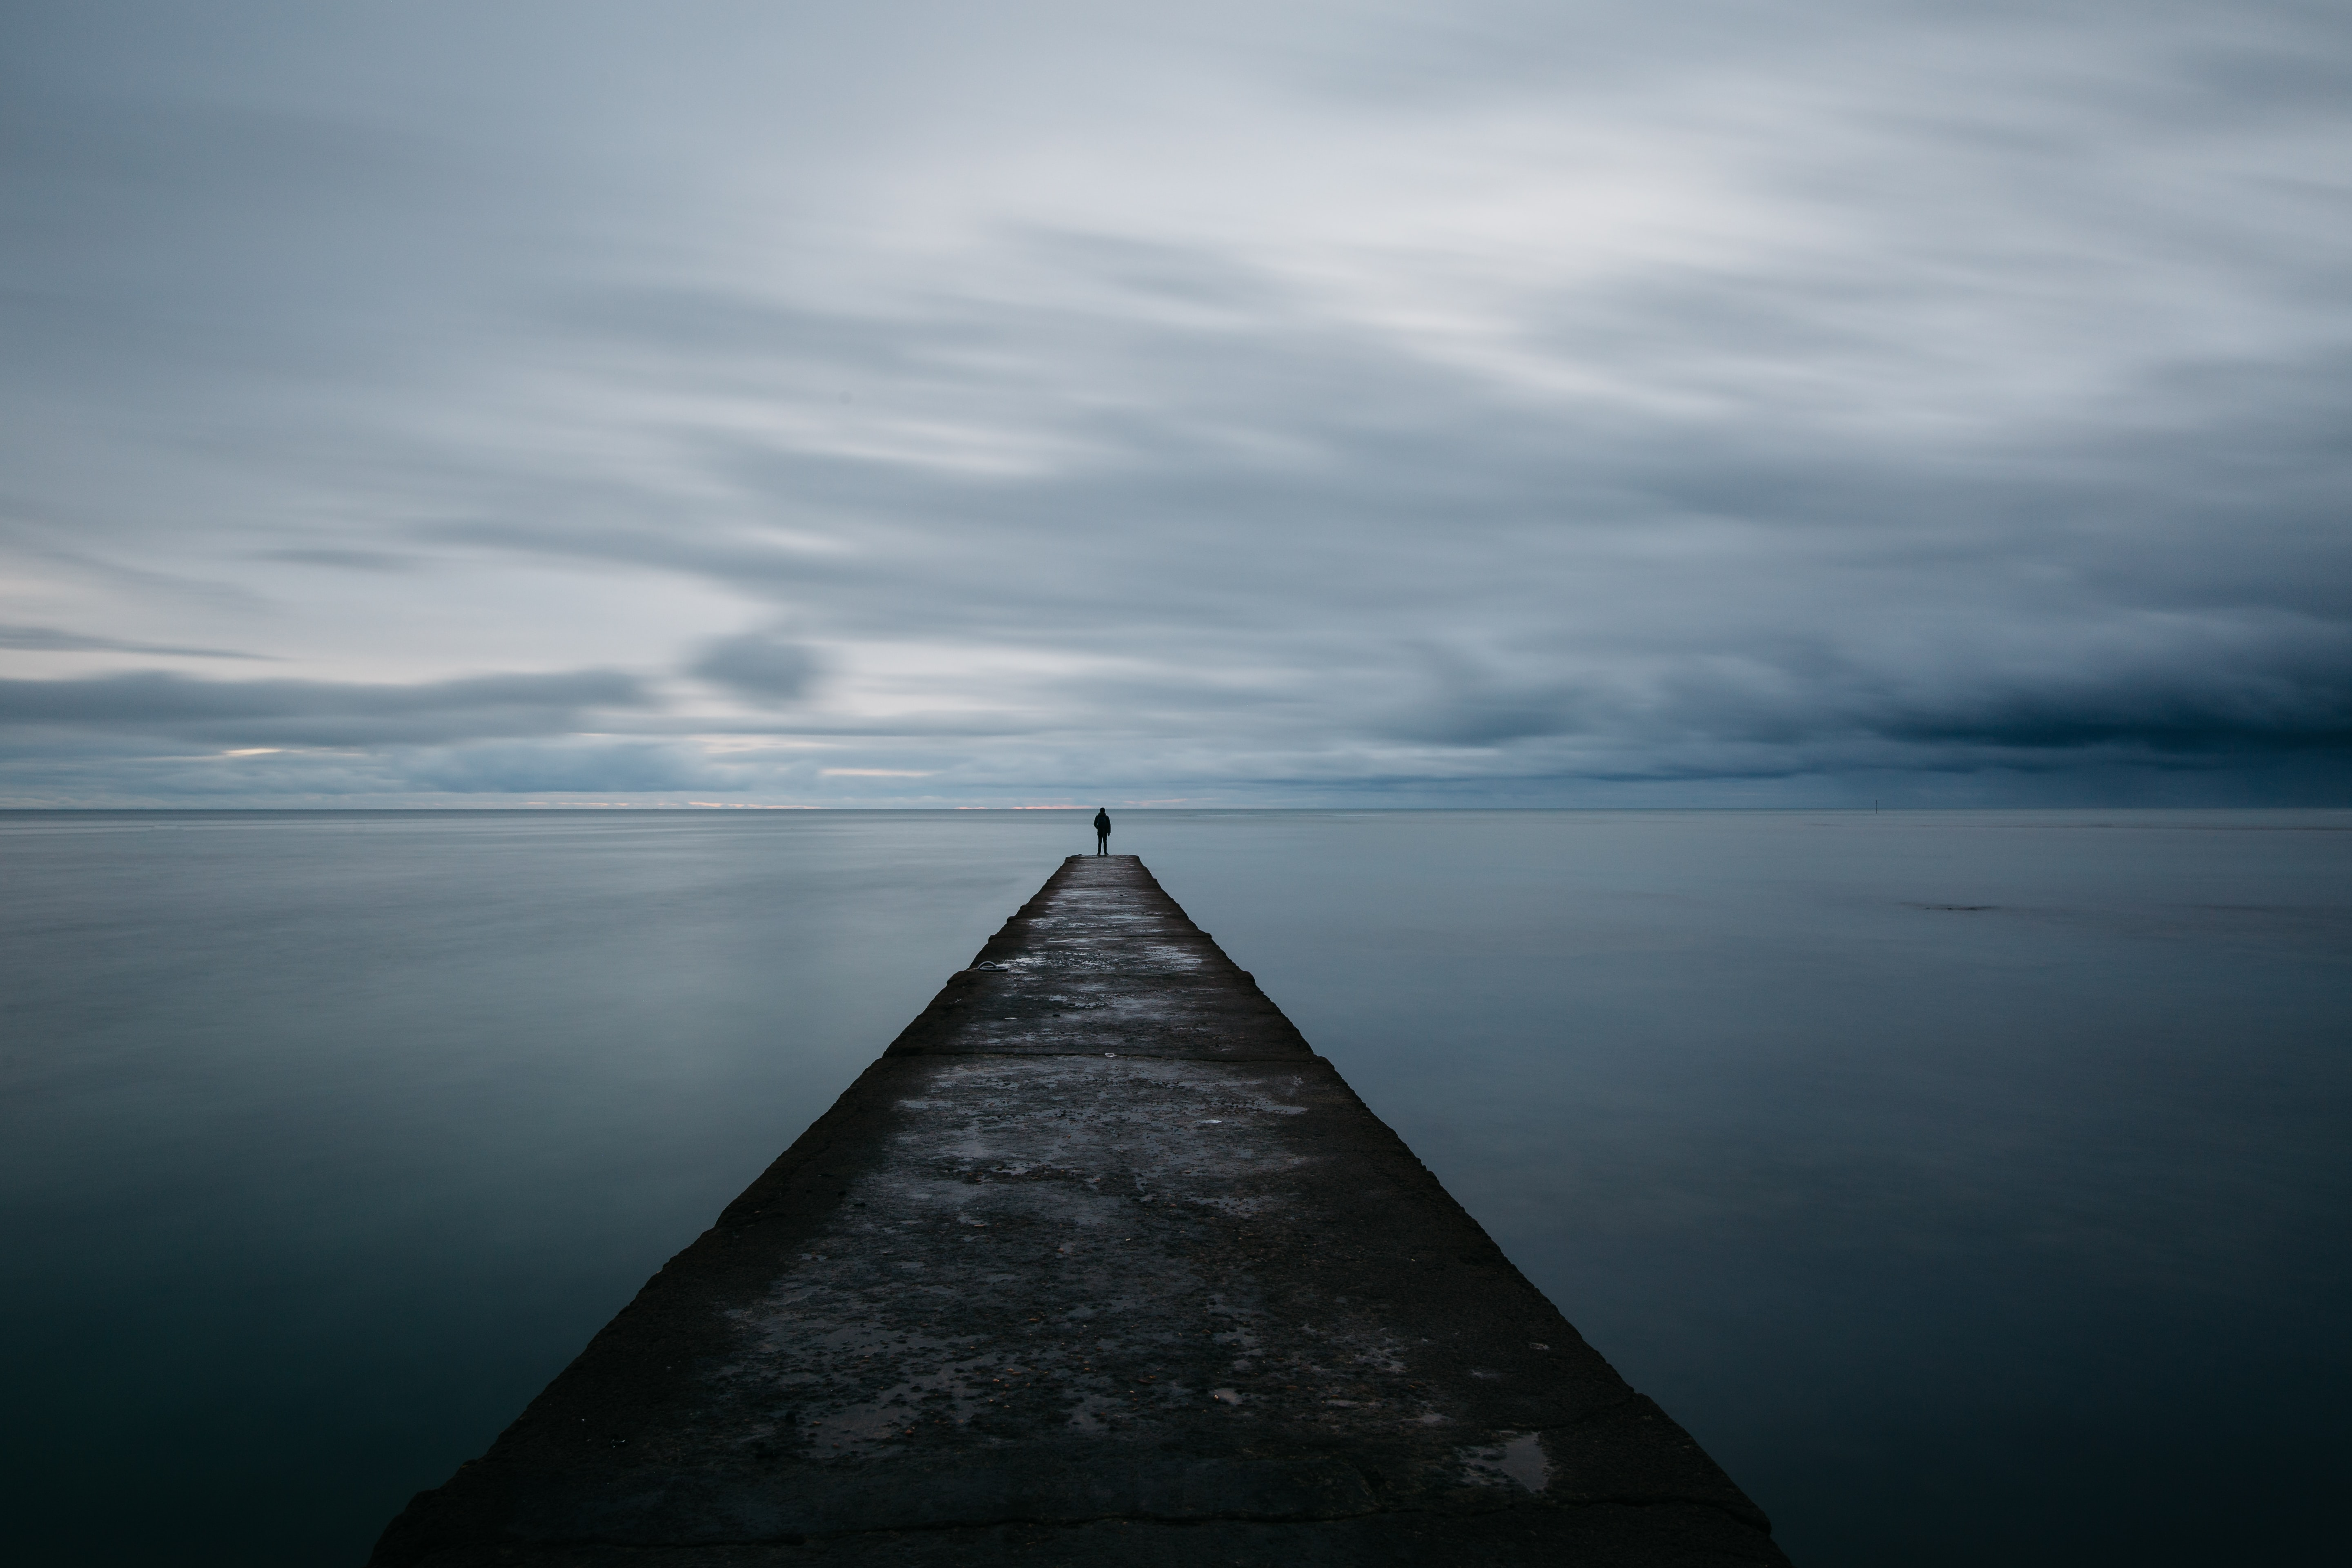 A silhouette of a person at the edge of a long pier